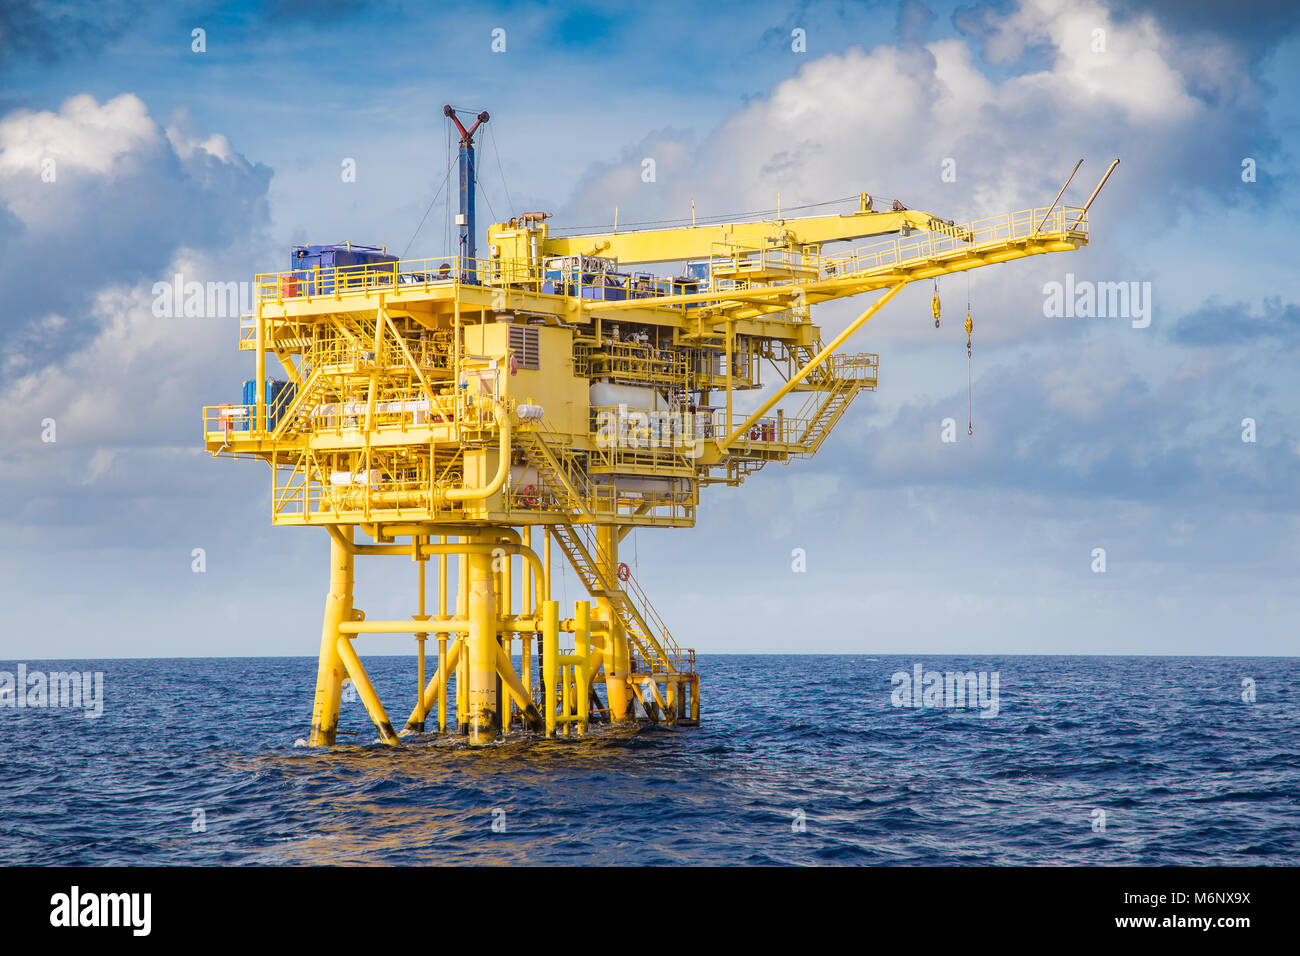 Offshore oil and gas industry, well head remote platform